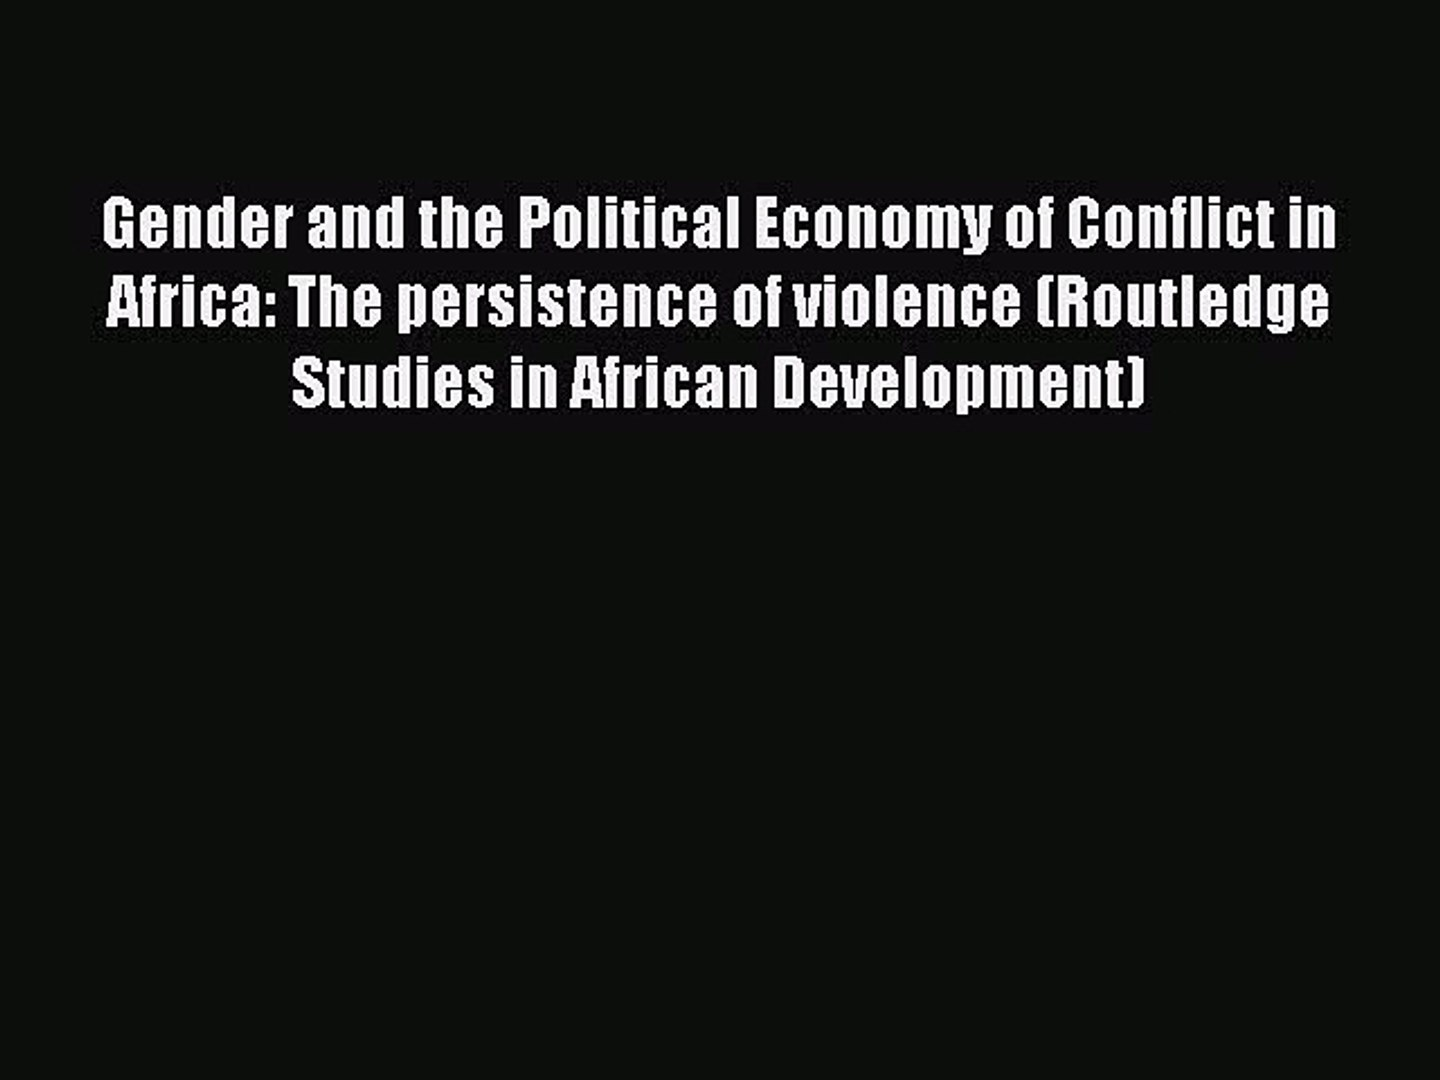 Download Gender and the Political Economy of Conflict in Africa: The persistence of violence